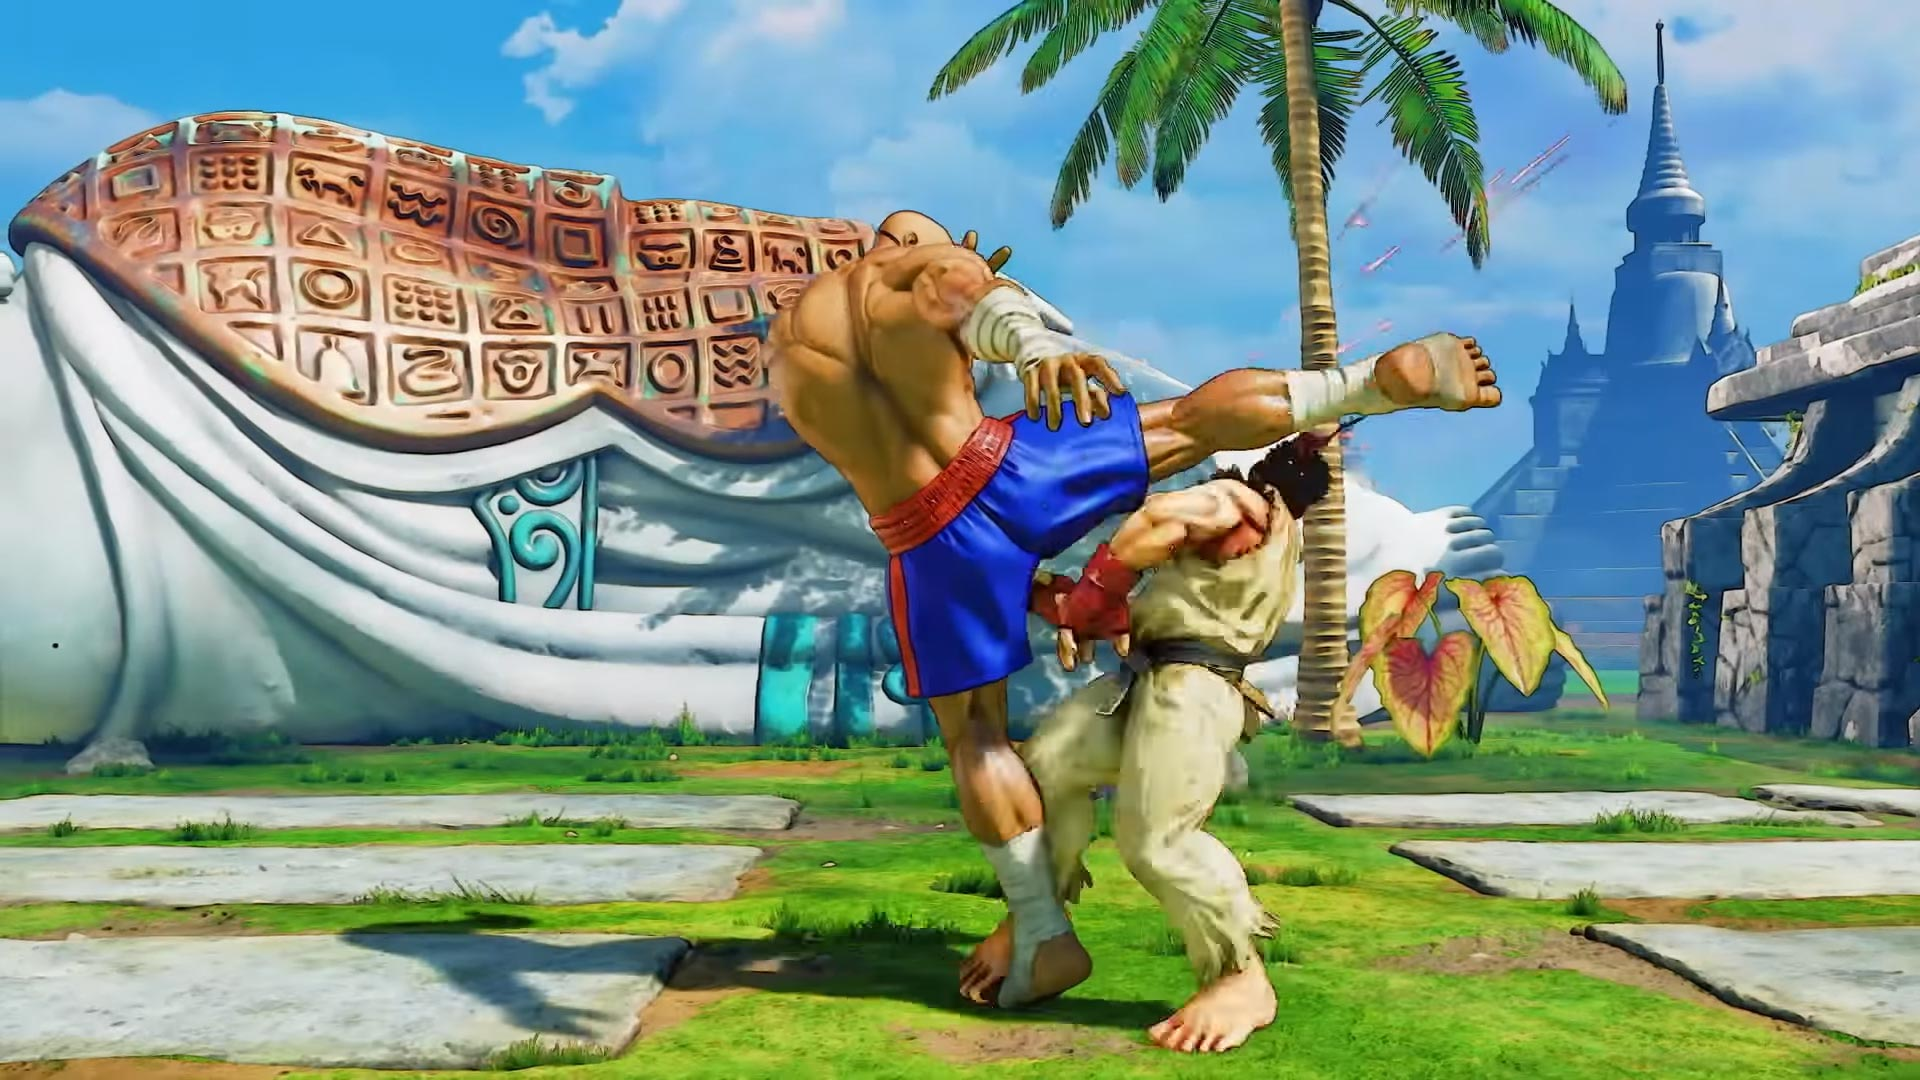 G and Sagat Street Fighter 5: Arcade Edition 11 out of 15 image gallery